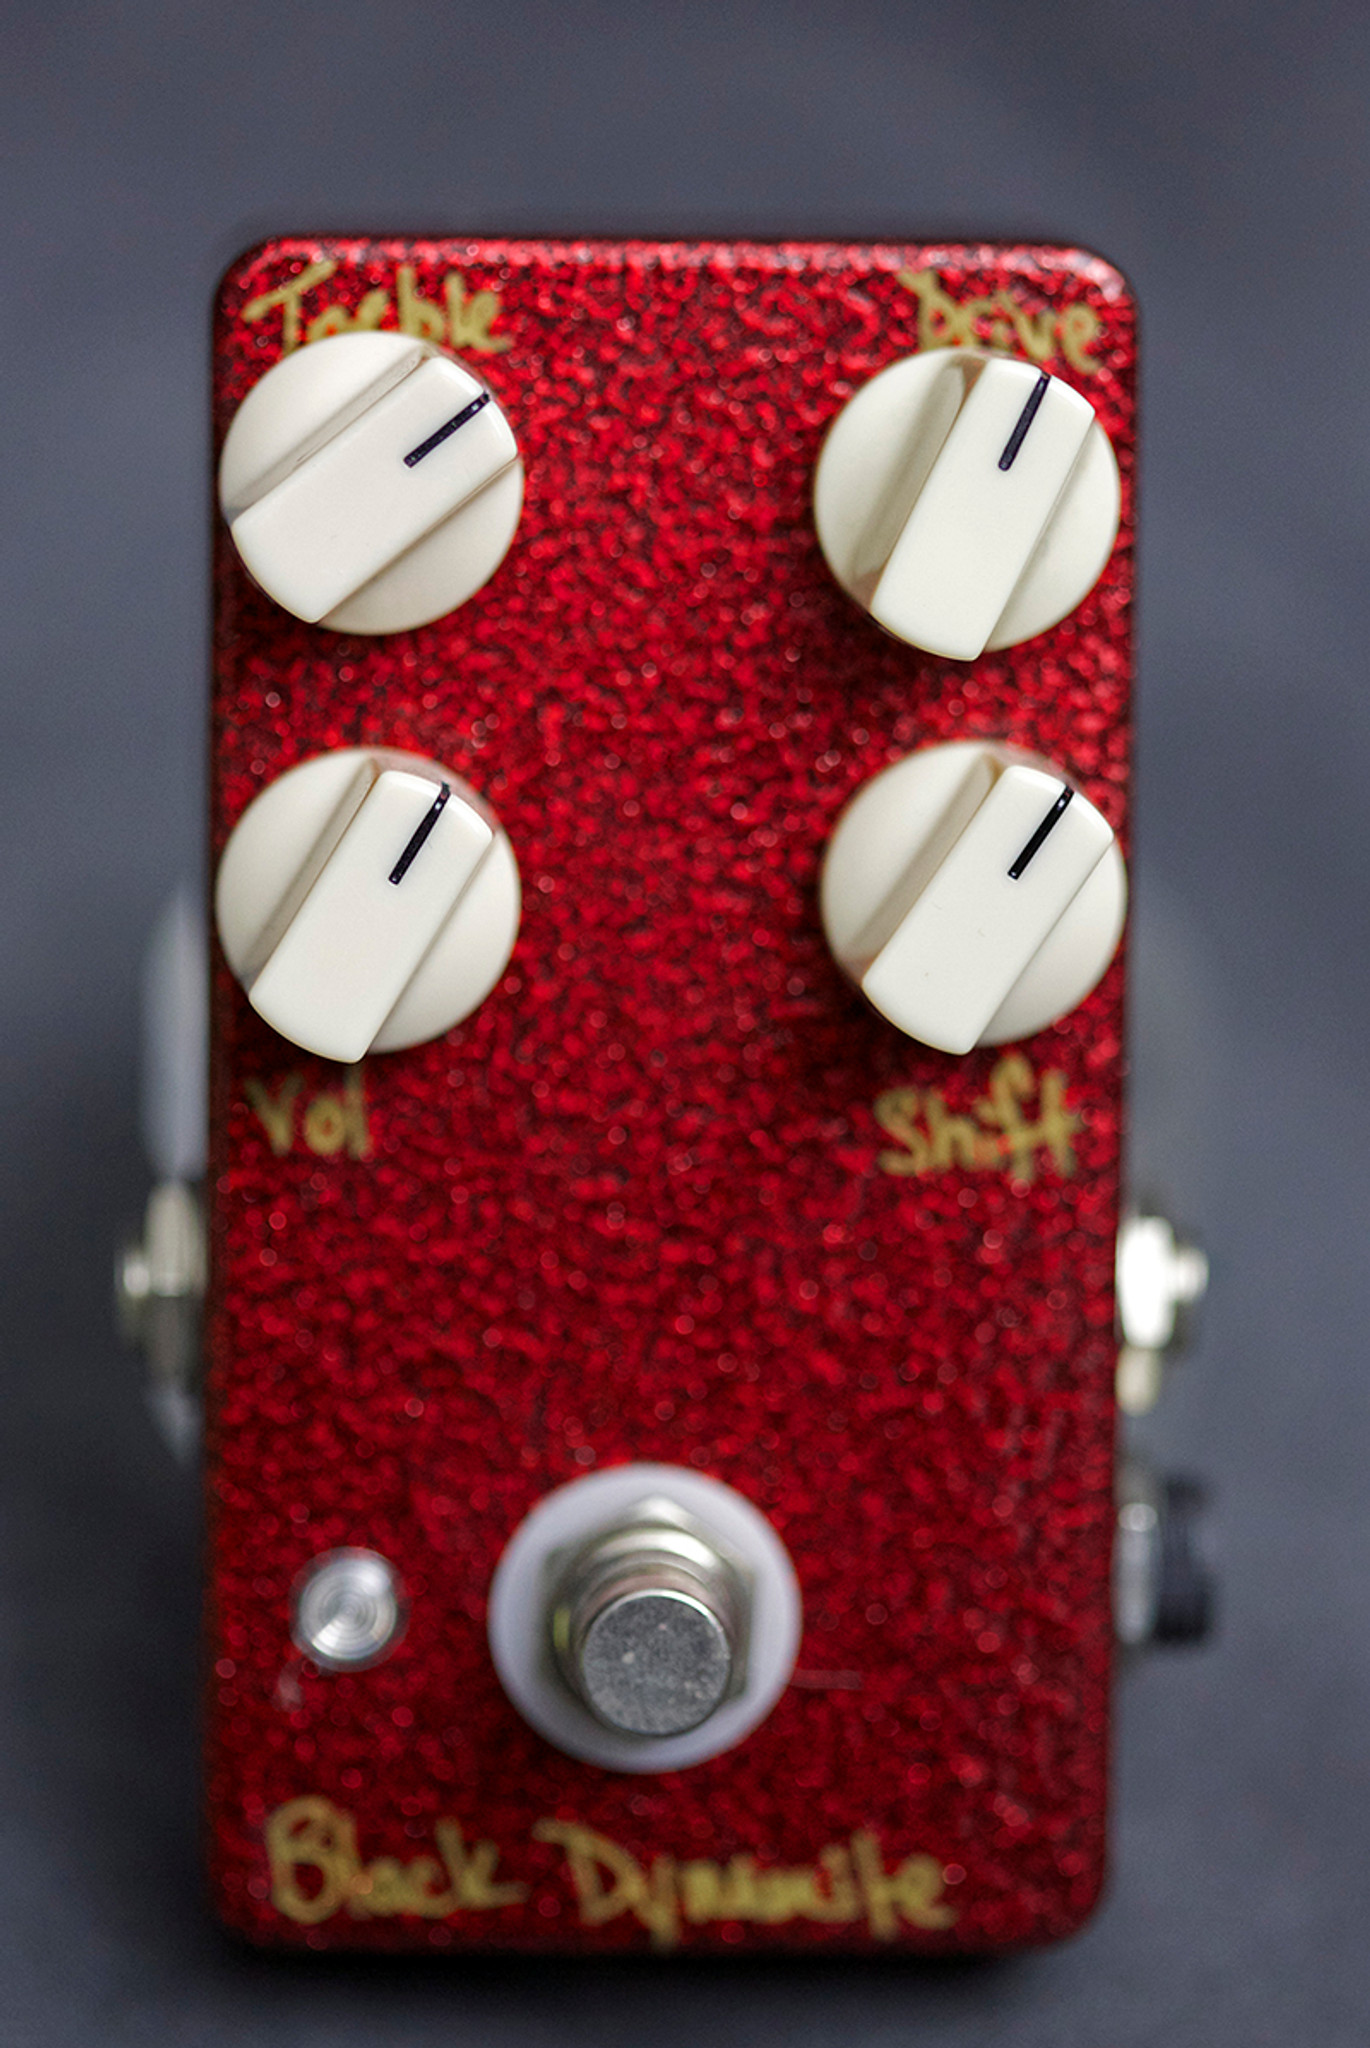 Coldcraft Effects Black Dynamite Overdrive Pedal